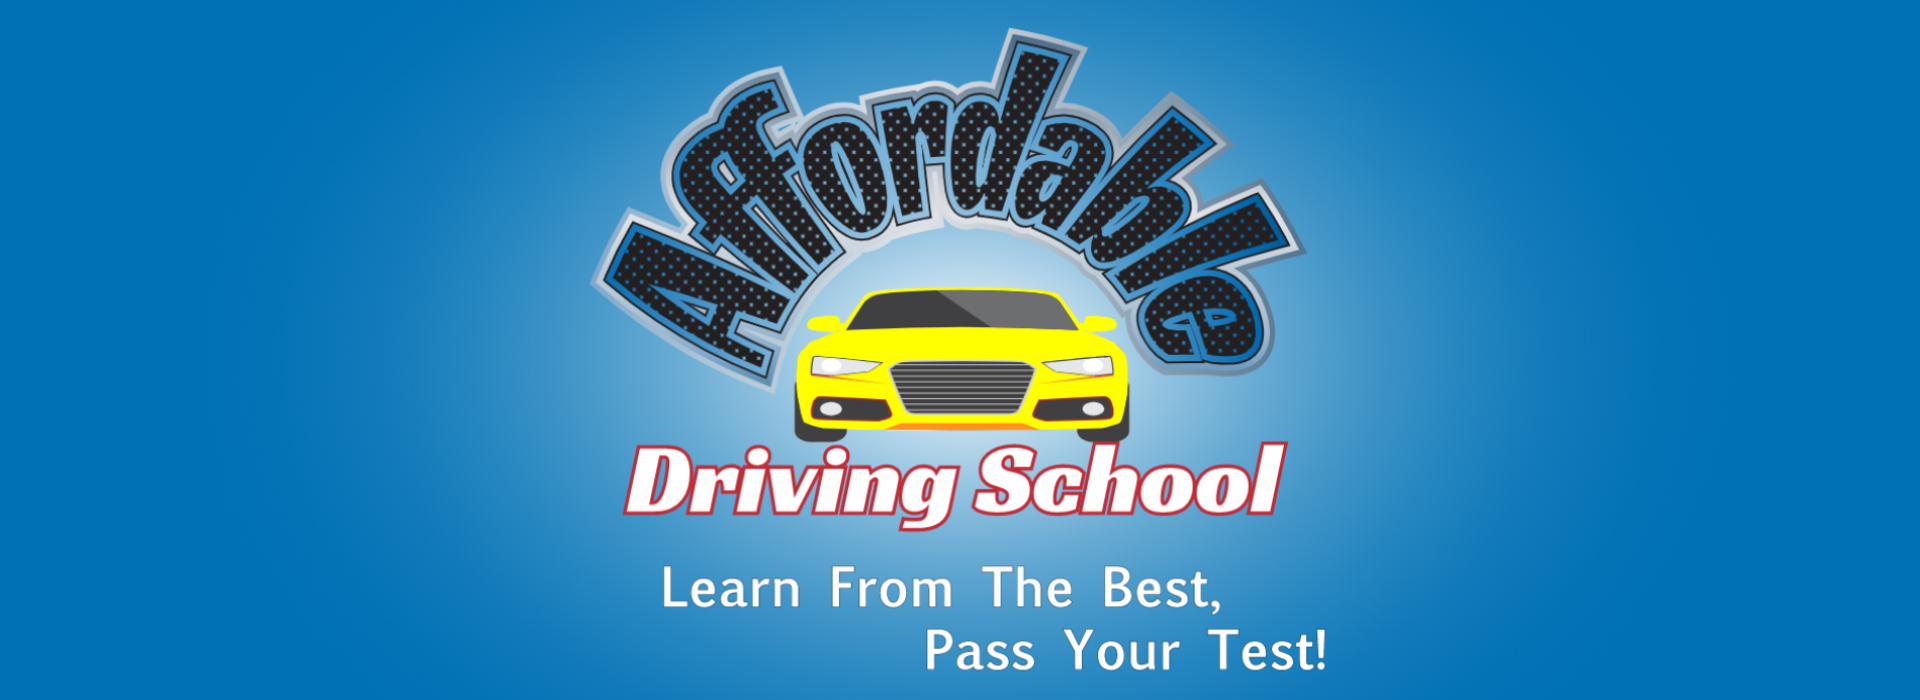 Affordable Driving School